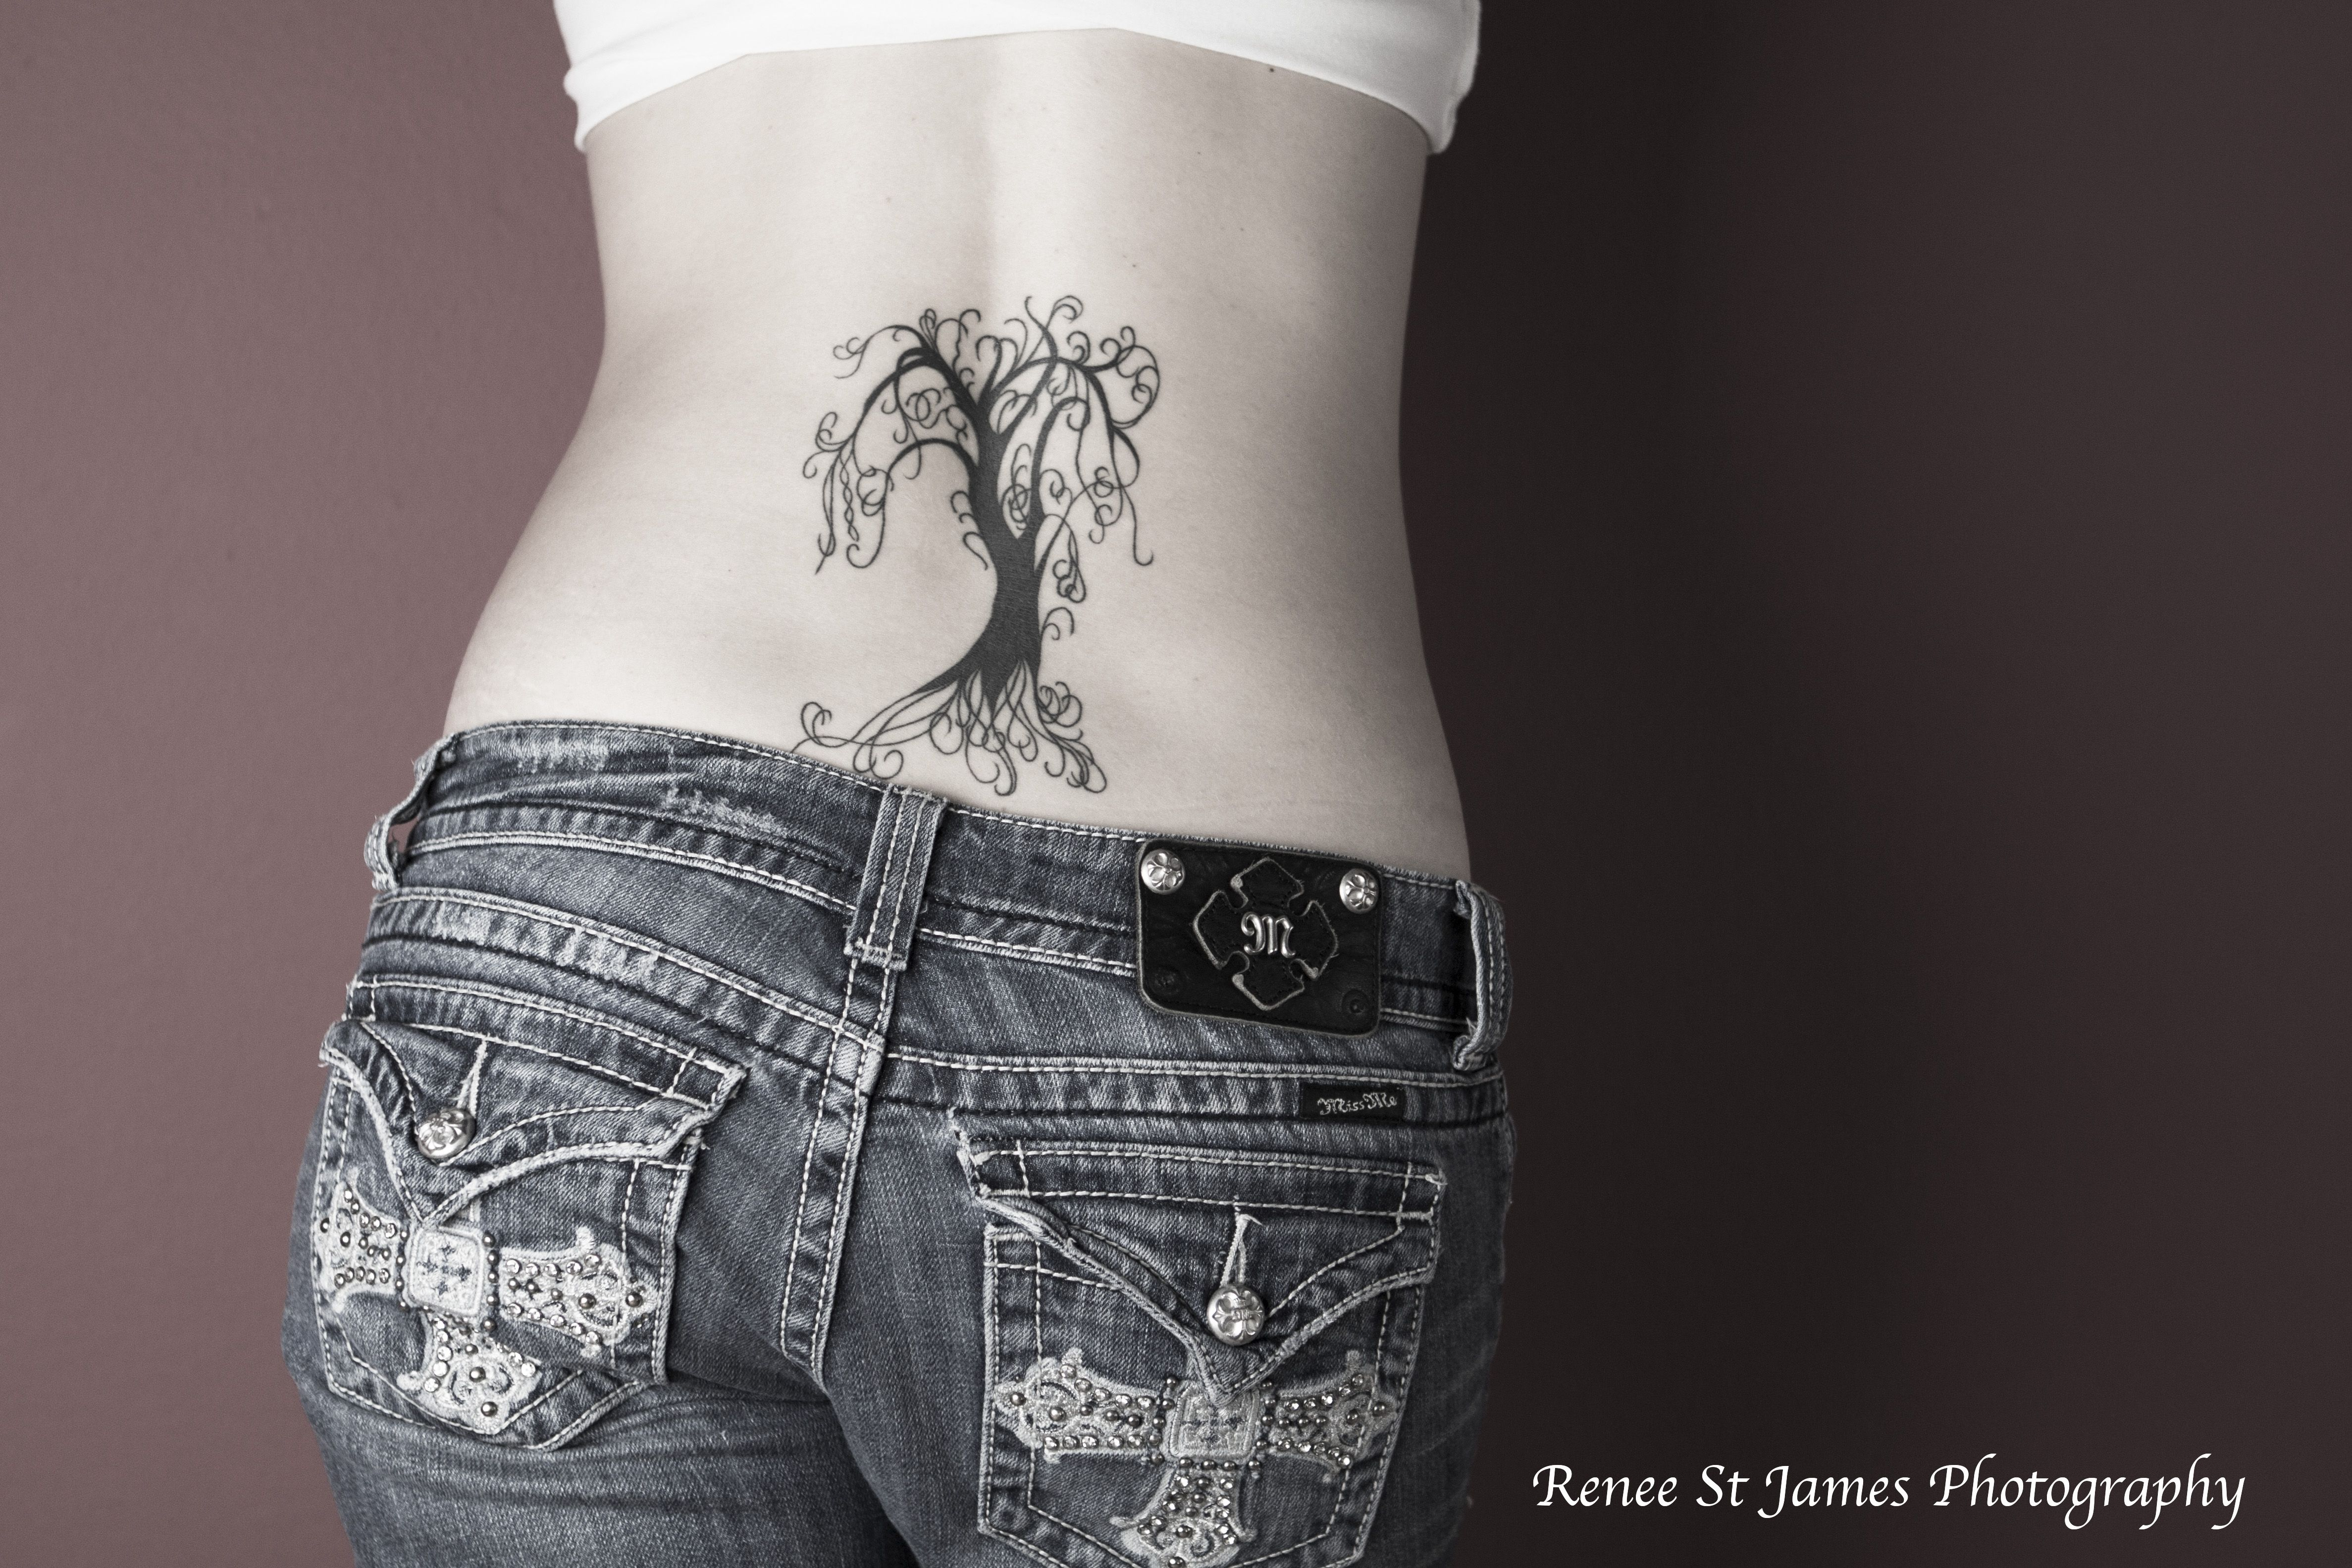 The willow tree tattoo the ability to adapt to life as a willow the willow tree tattoo the ability to adapt to life as a willow can bend biocorpaavc Image collections